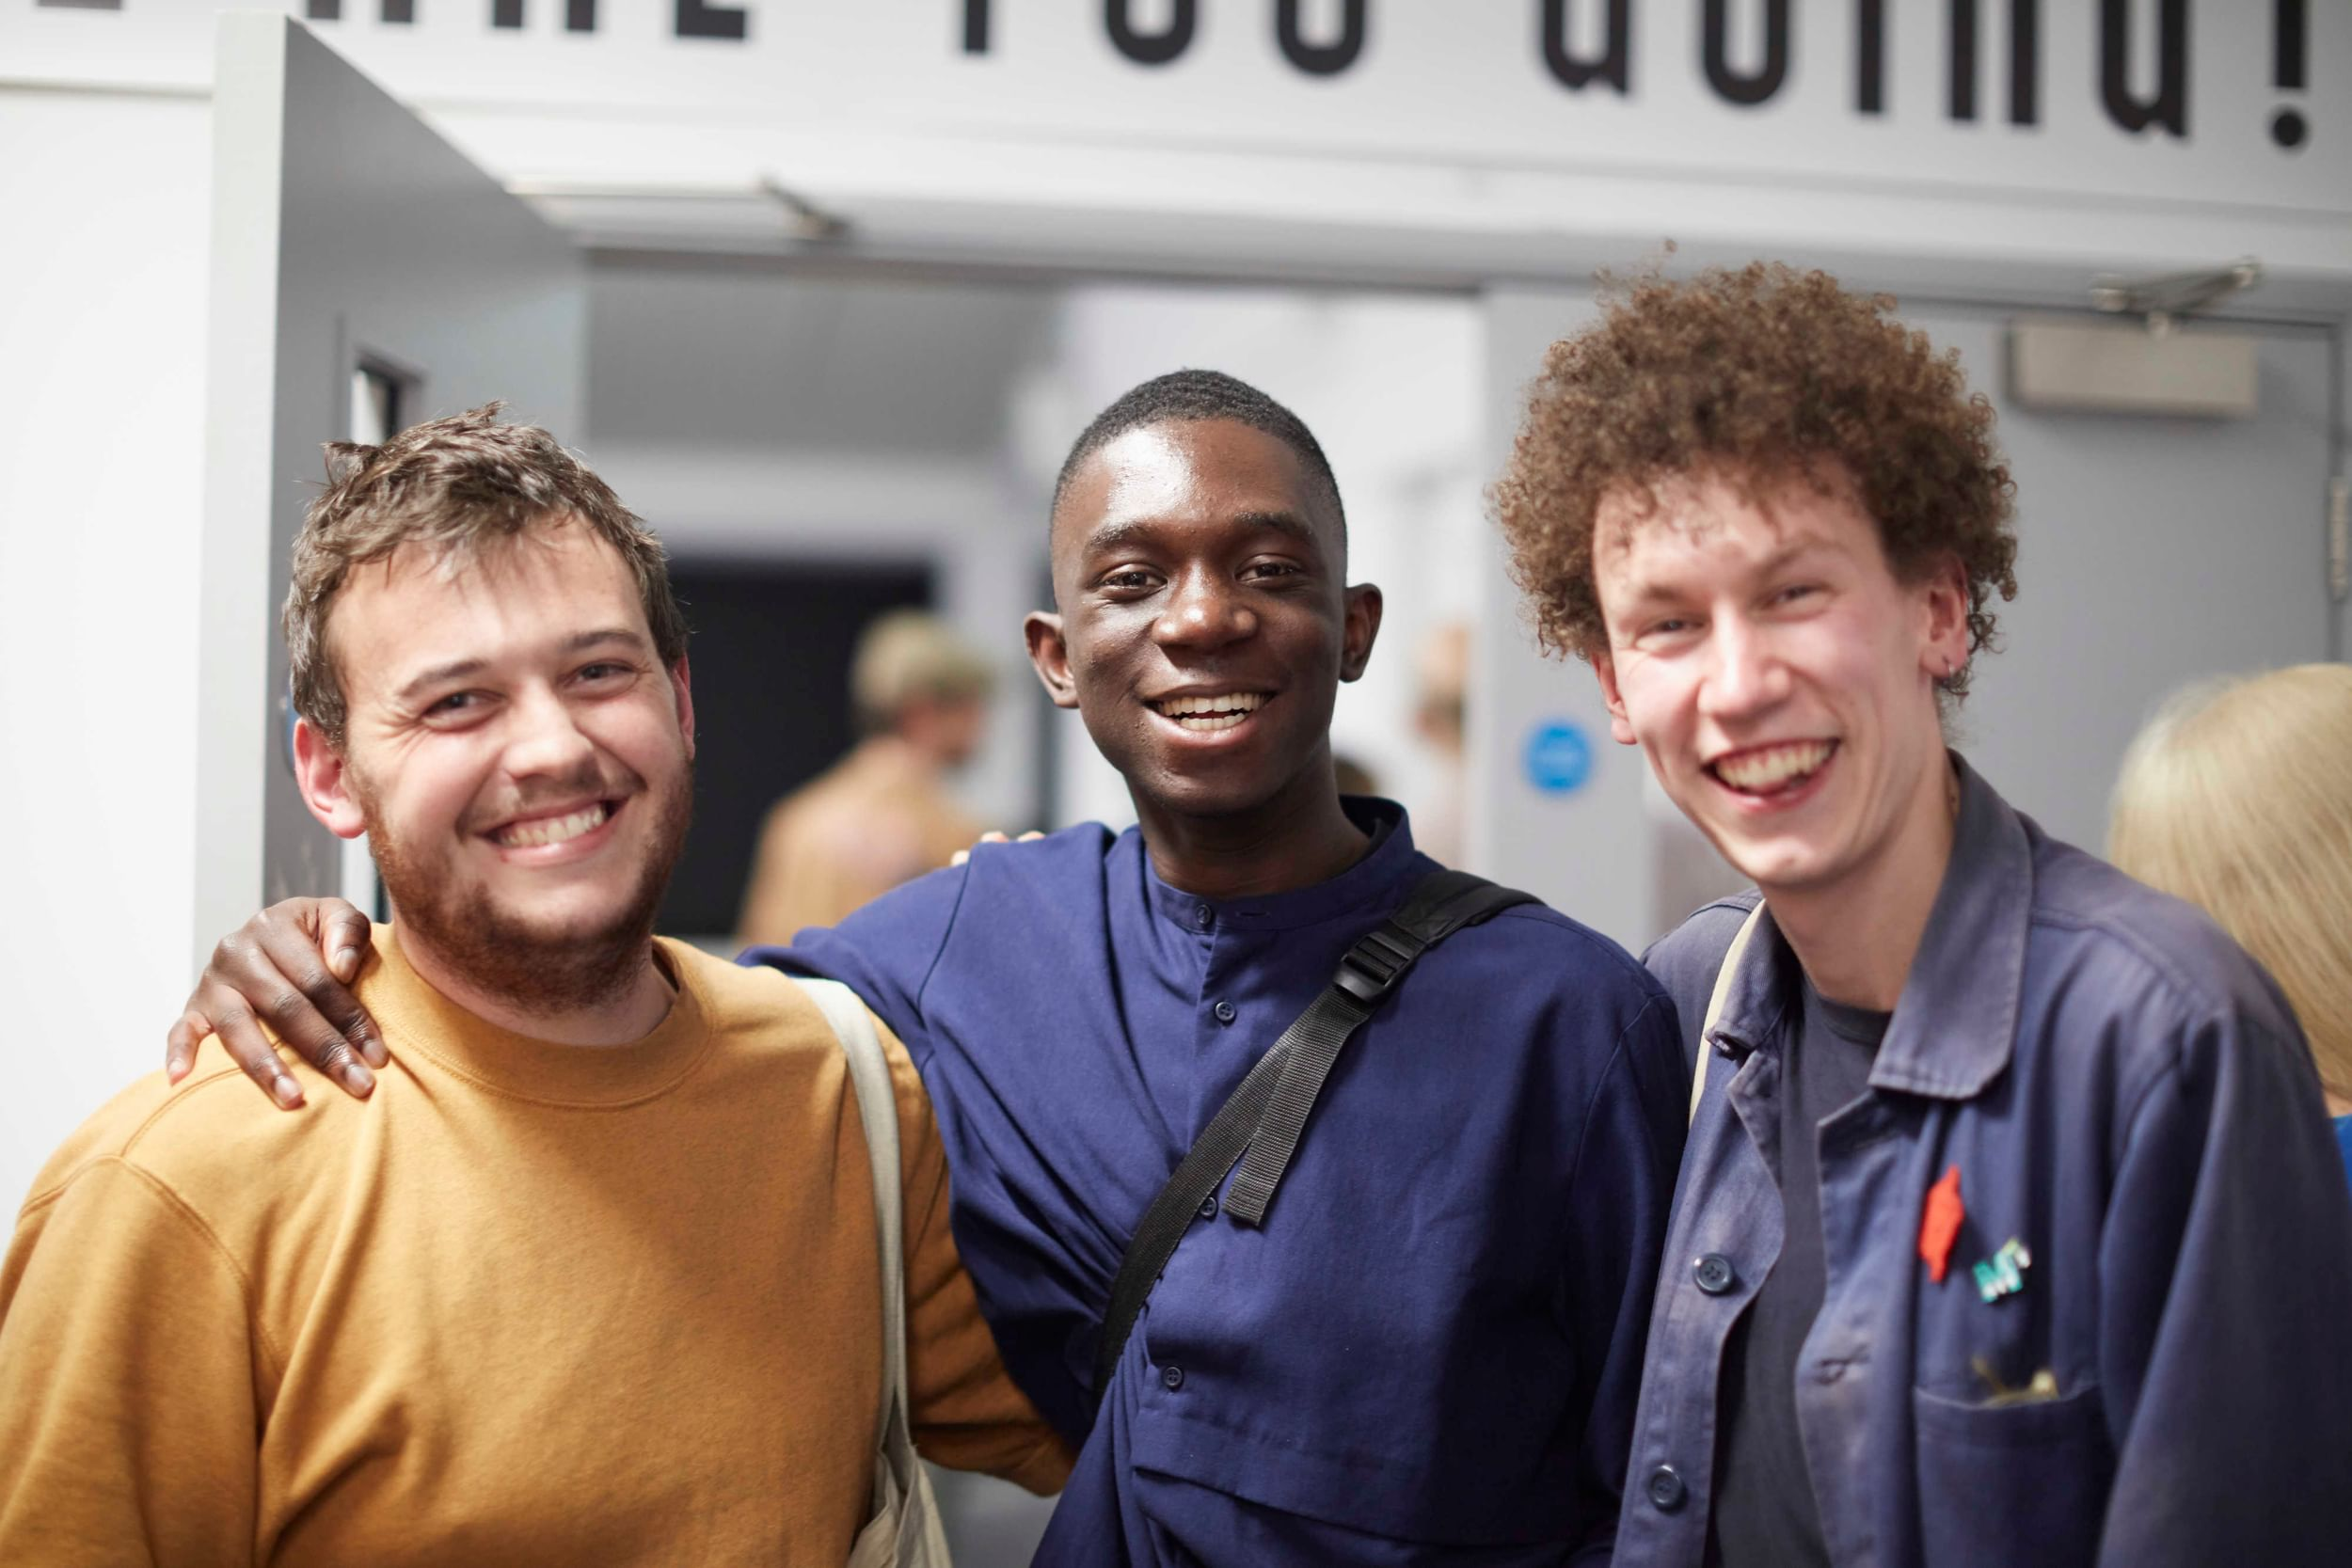 Group of three students smiling